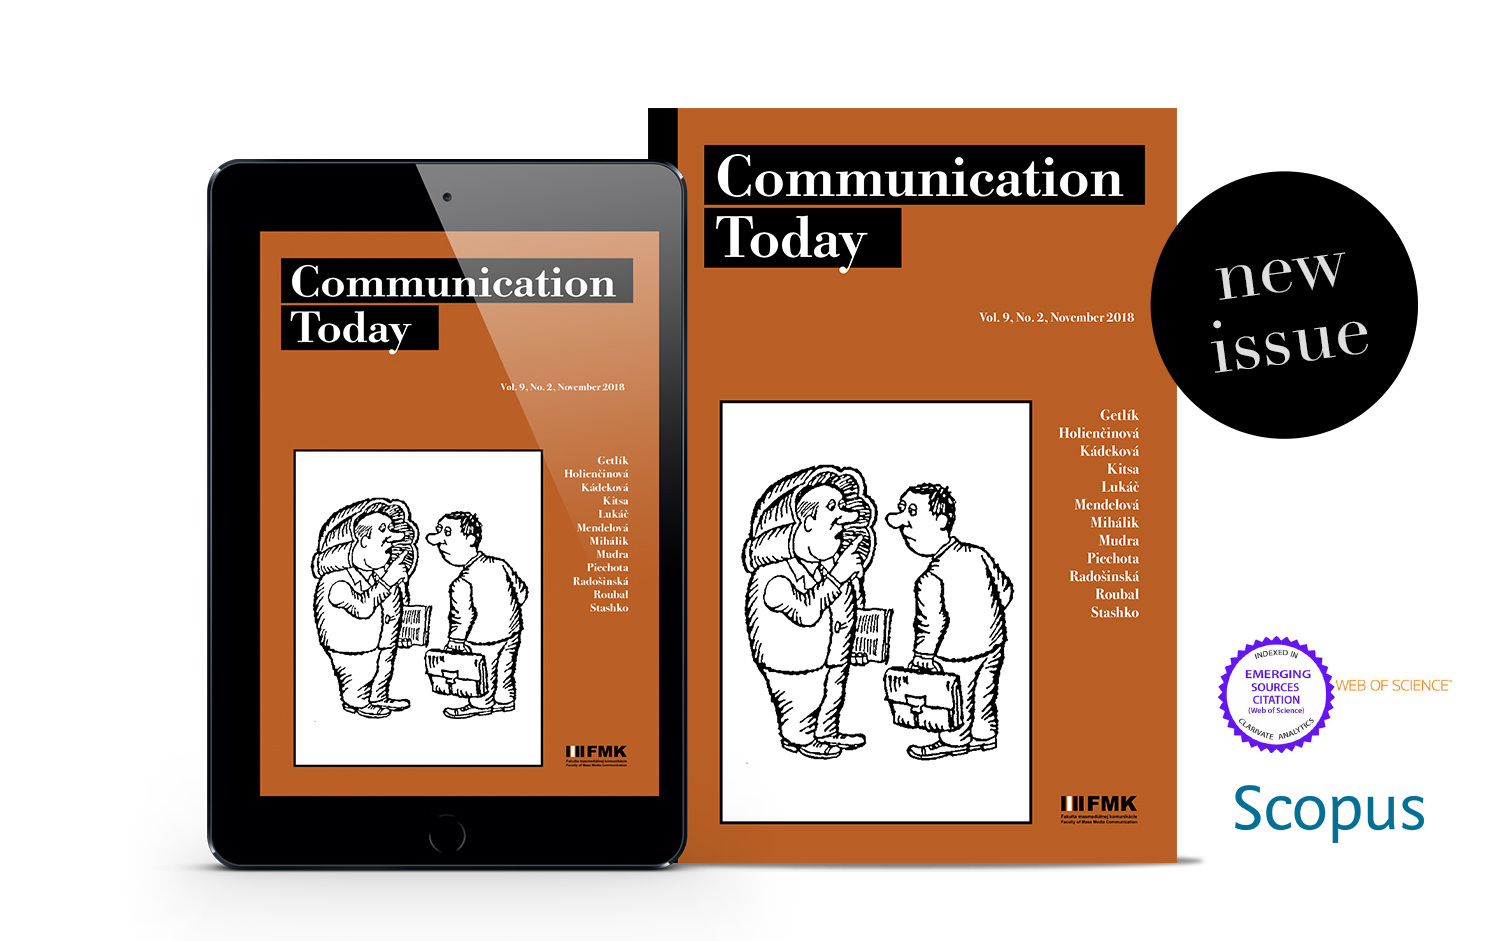 Cover: Communication Today no. 2, vol. 9